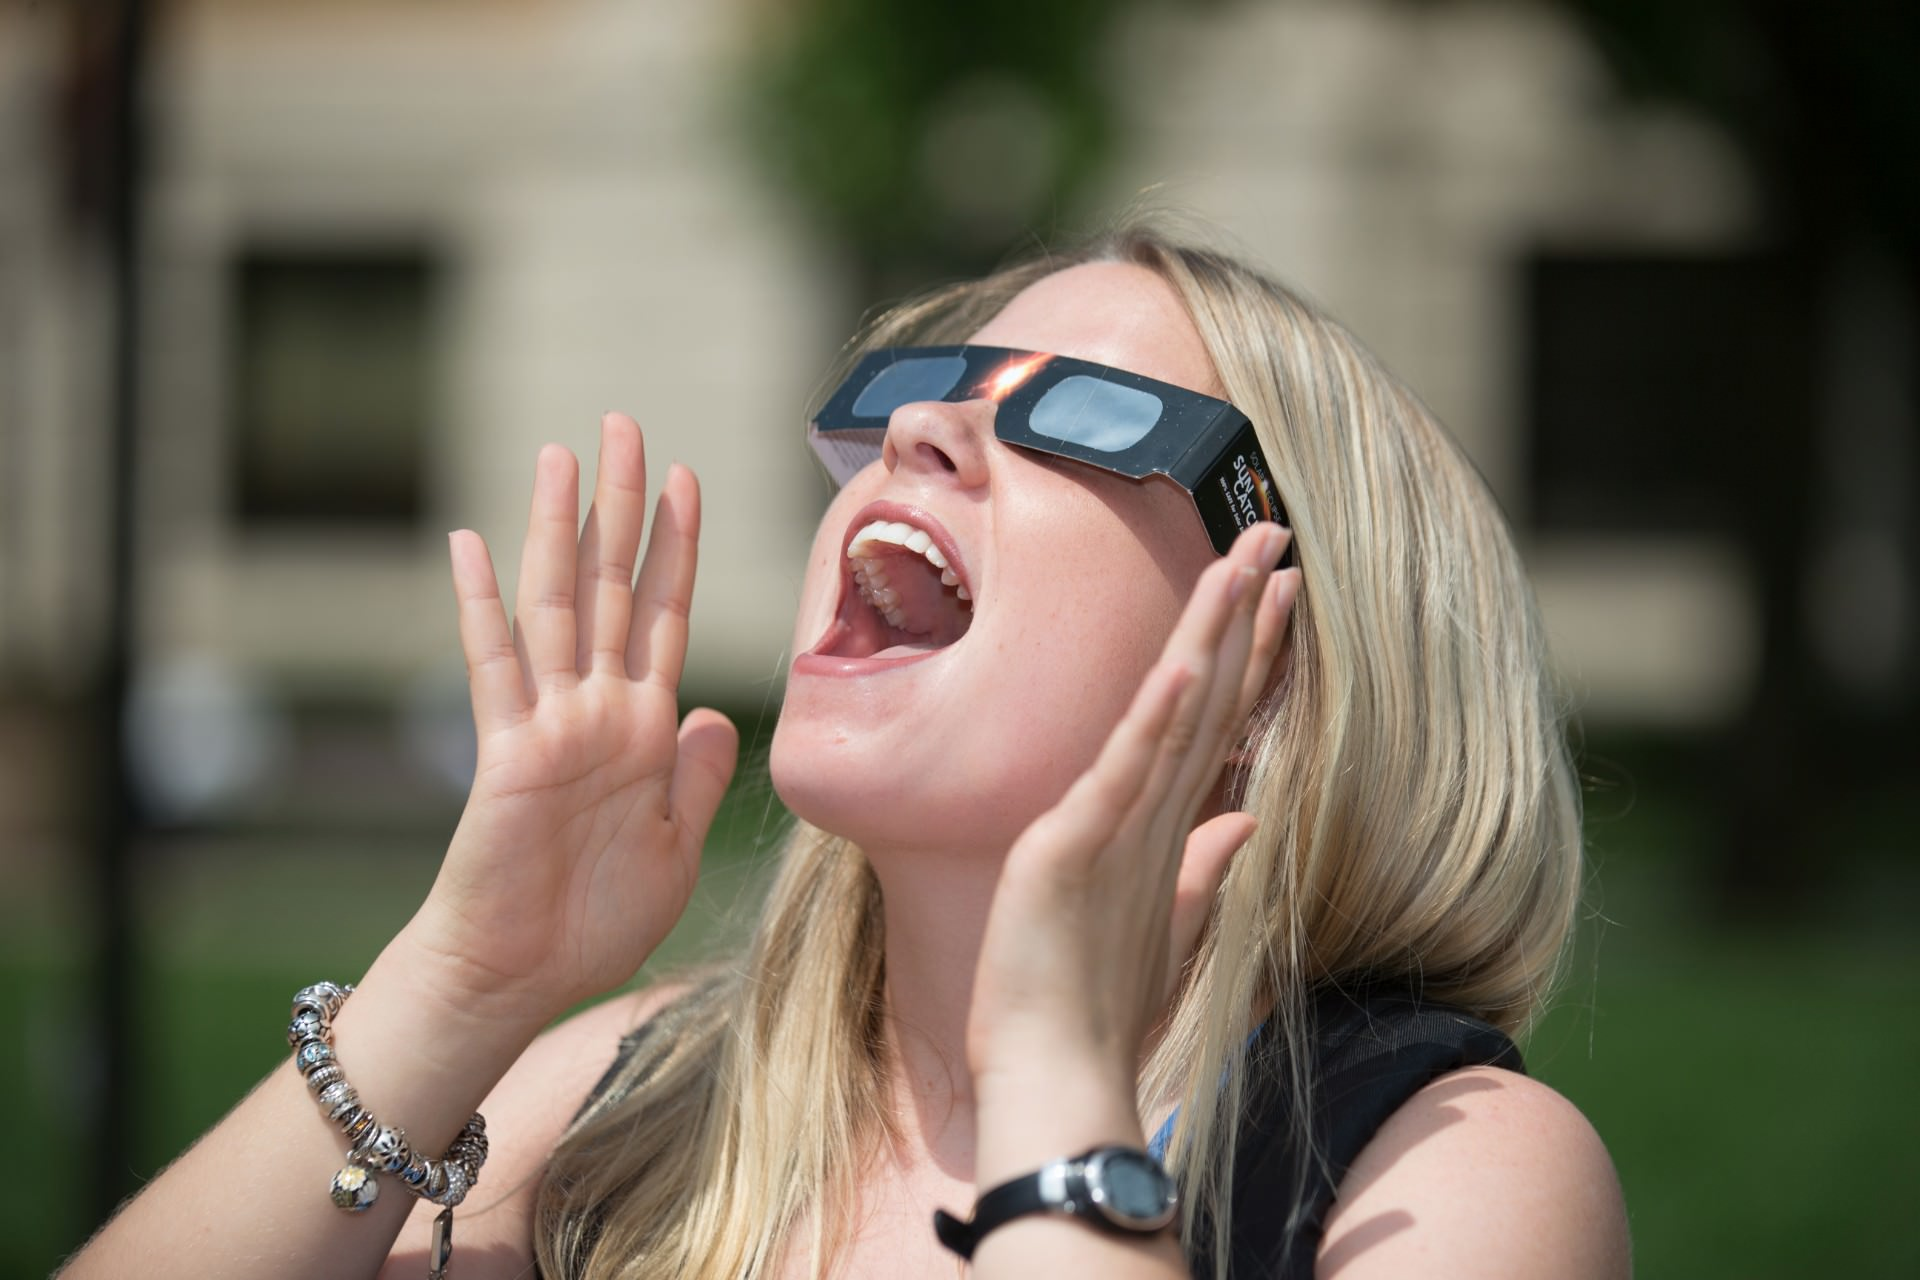 Close up of surprised girl looking up wearing solar eclipse glasses